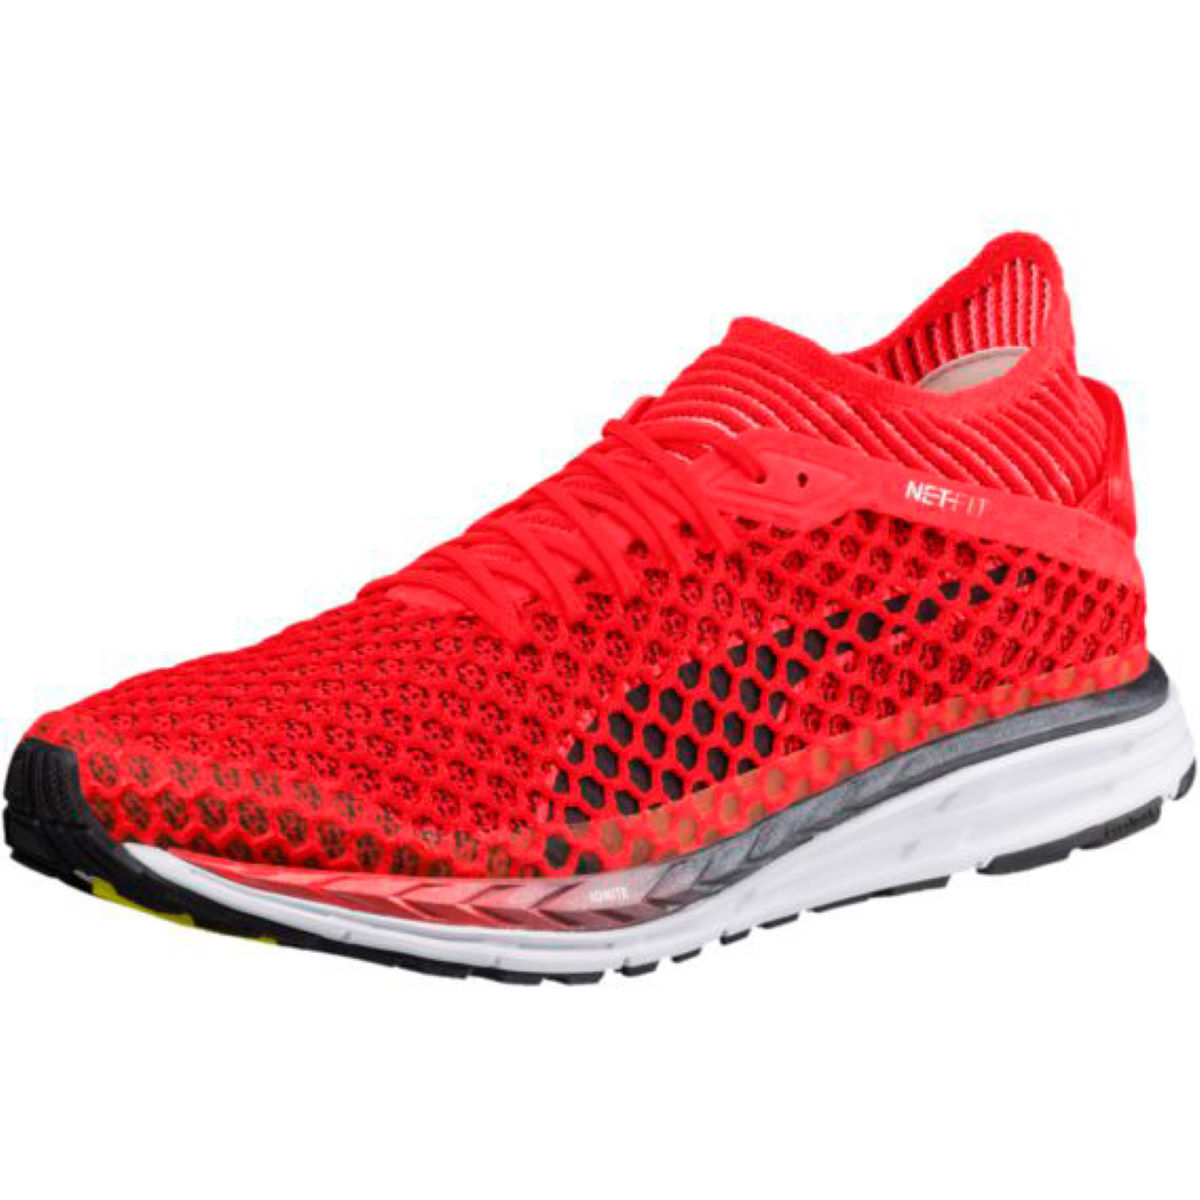 Chaussures Puma Speed Ignite Netfit 2 (rouges) - UK 10